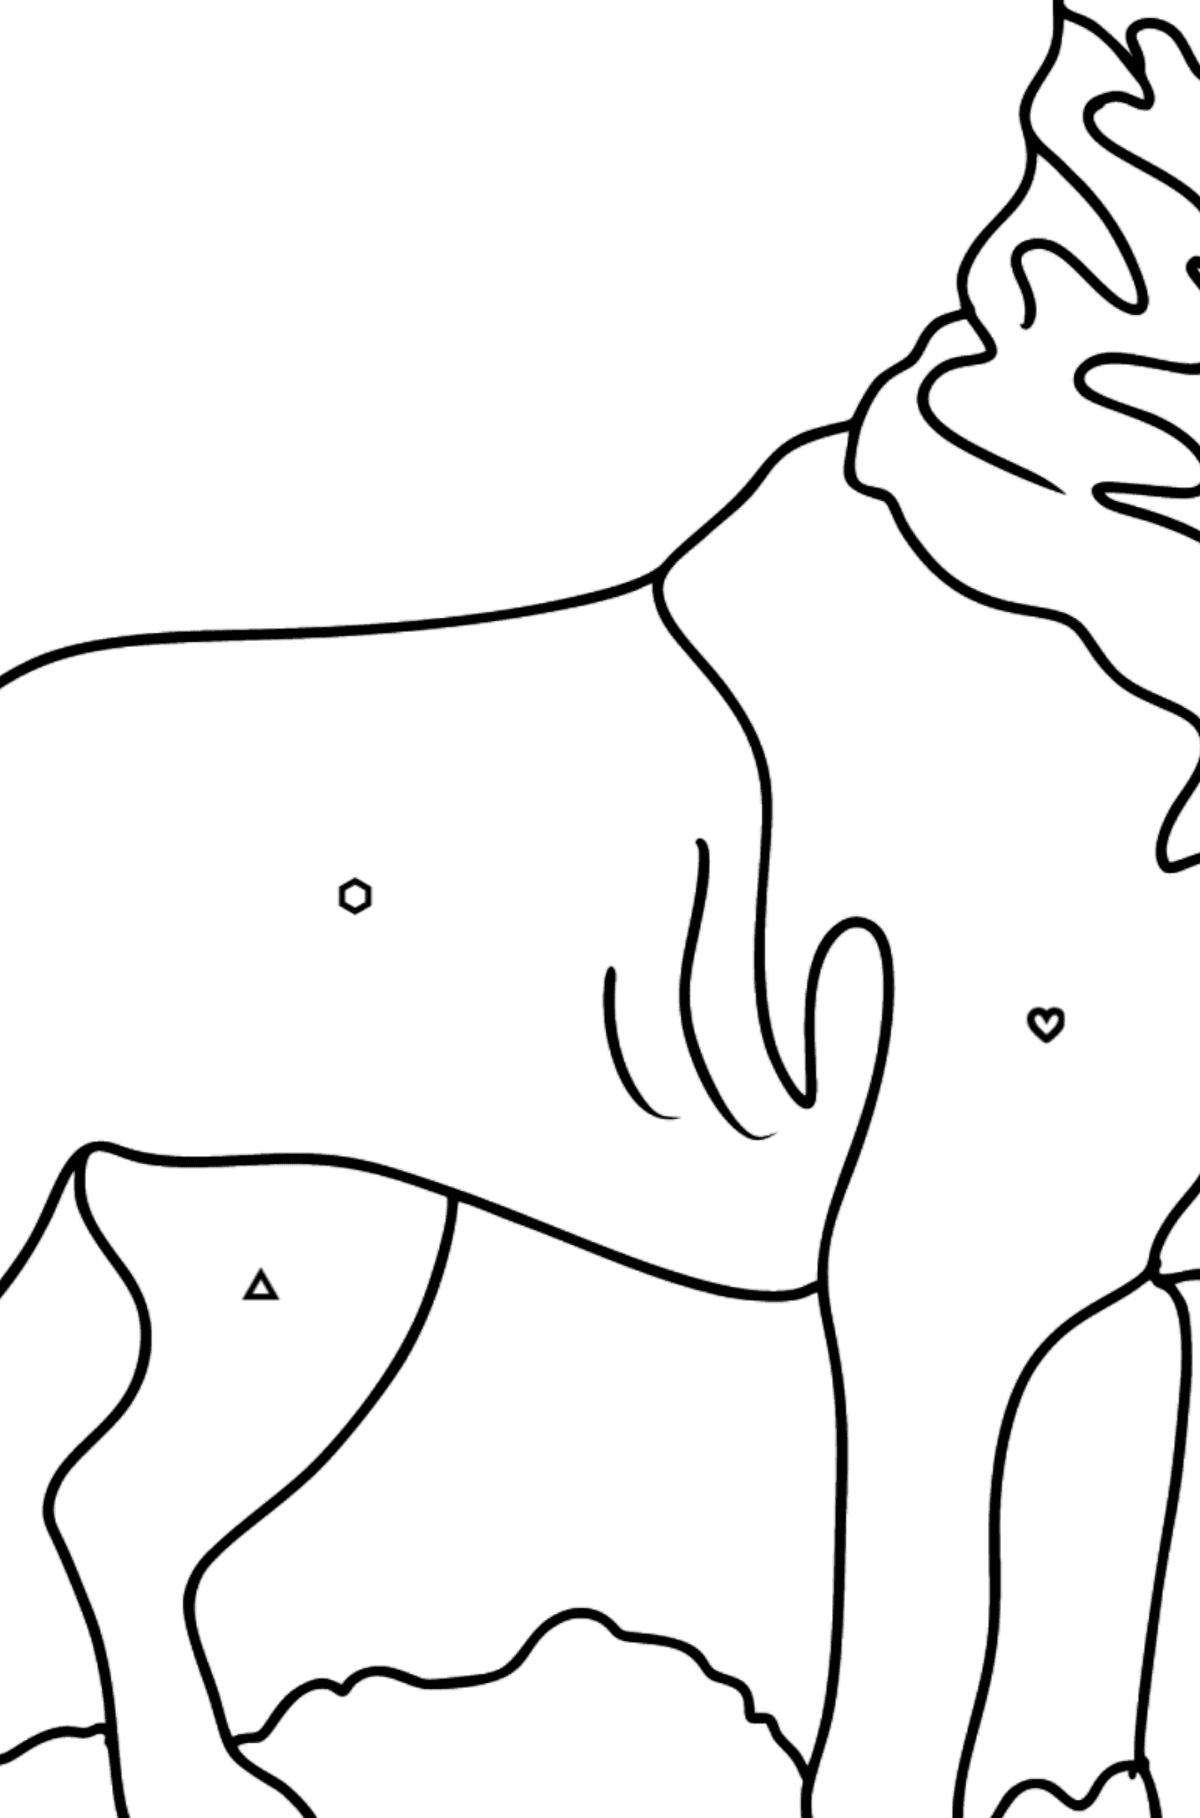 Rottweiler coloring page - Coloring by Geometric Shapes for Kids